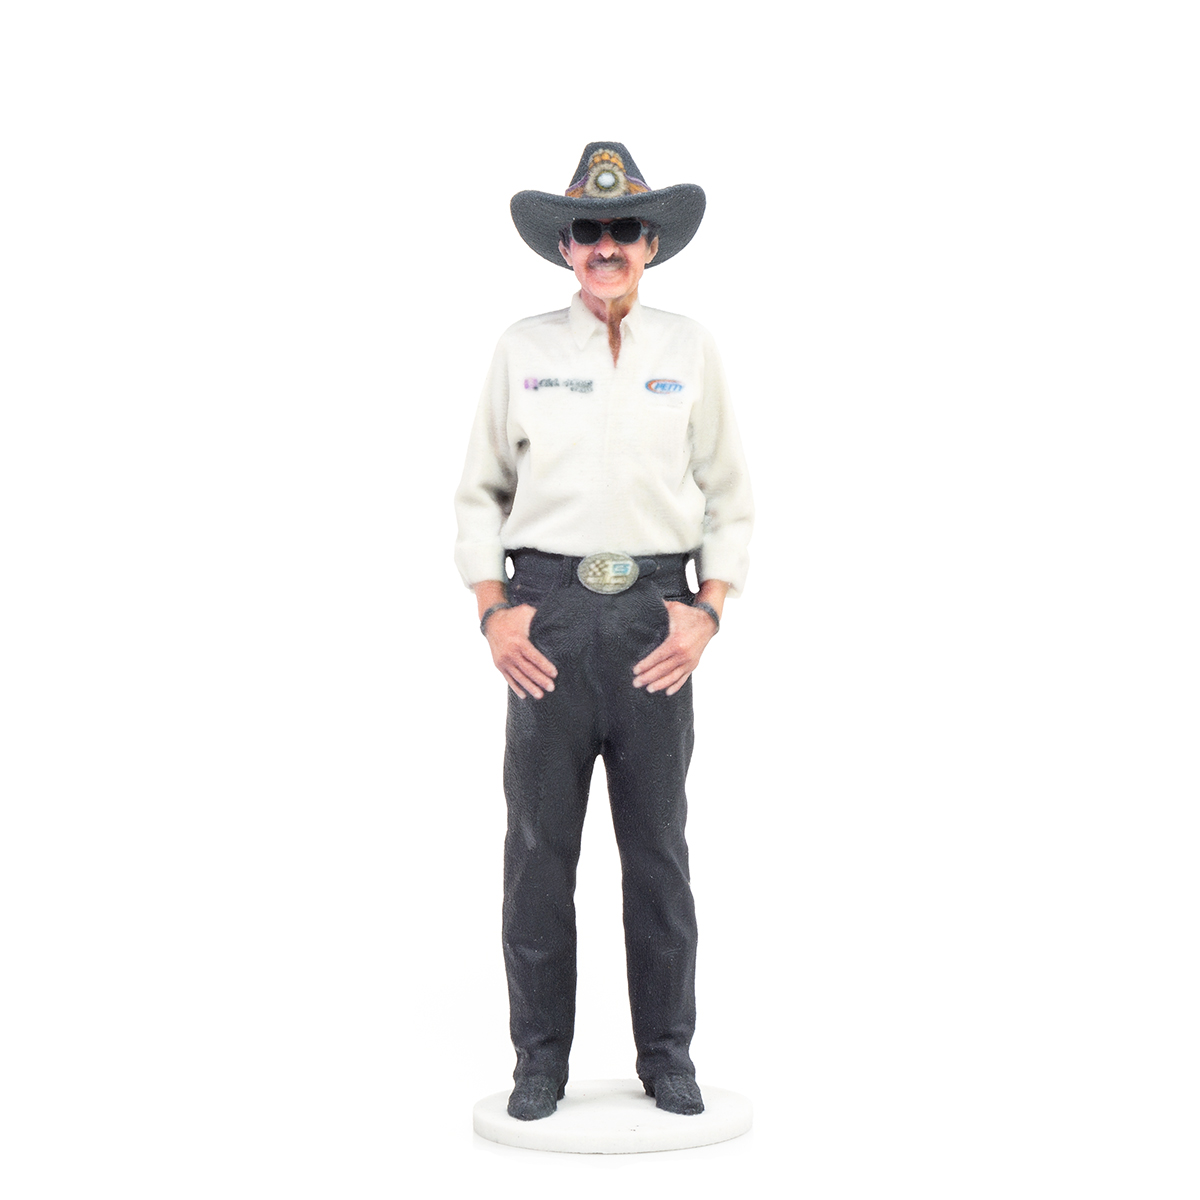 "Richard Petty STP 7"" 3D Printed Figurine"